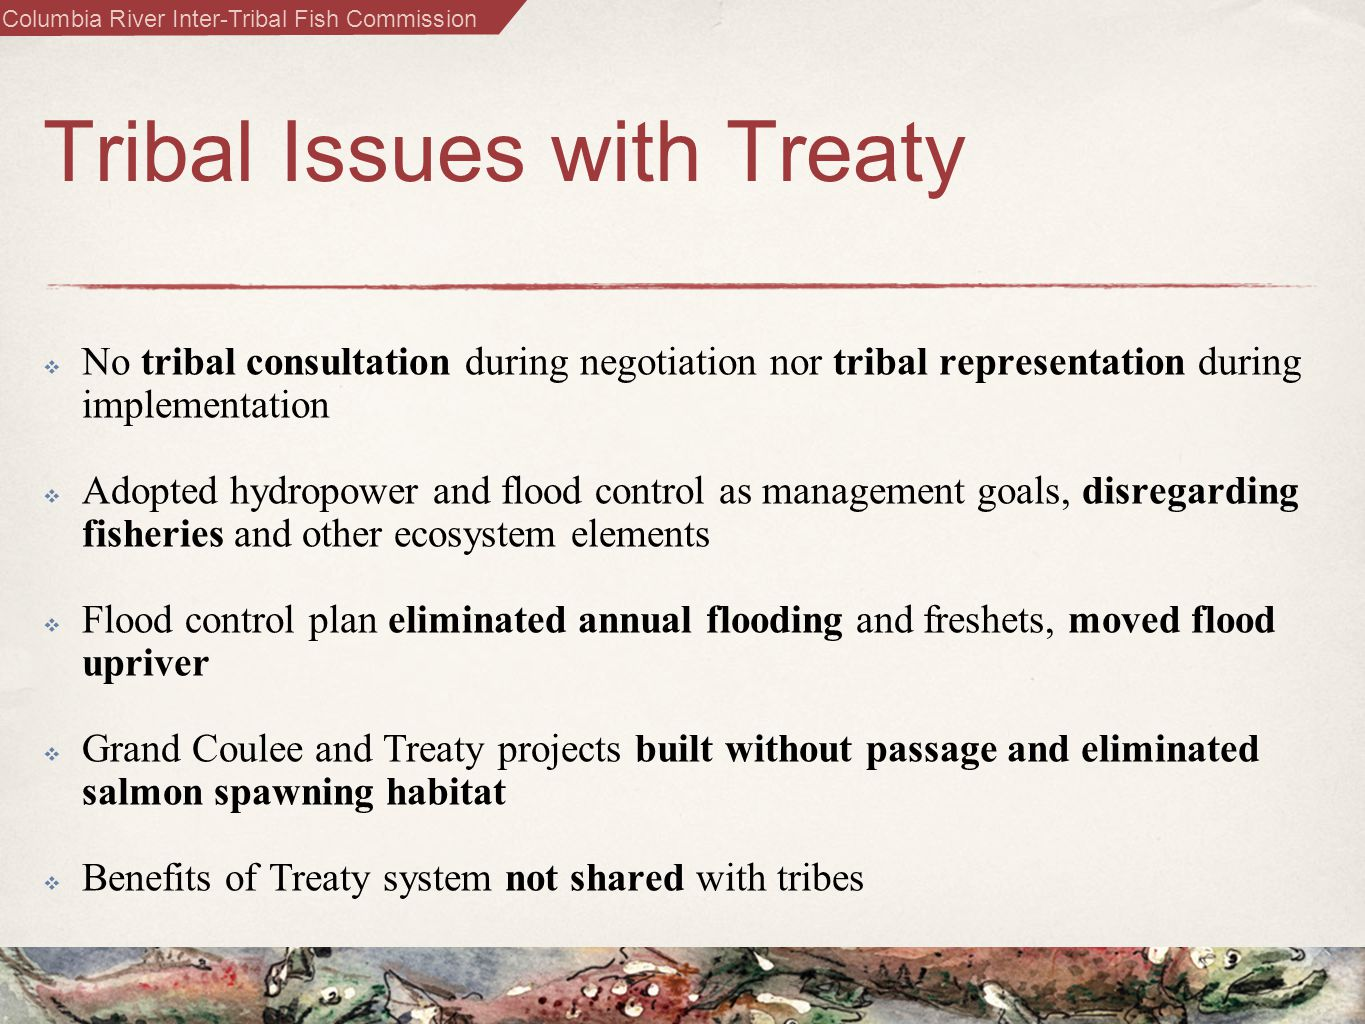 Columbia River Inter-Tribal Fish Commission Tribal Issues with Treaty  No tribal consultation during negotiation nor tribal representation during implementation  Adopted hydropower and flood control as management goals, disregarding fisheries and other ecosystem elements  Flood control plan eliminated annual flooding and freshets, moved flood upriver  Grand Coulee and Treaty projects built without passage and eliminated salmon spawning habitat  Benefits of Treaty system not shared with tribes